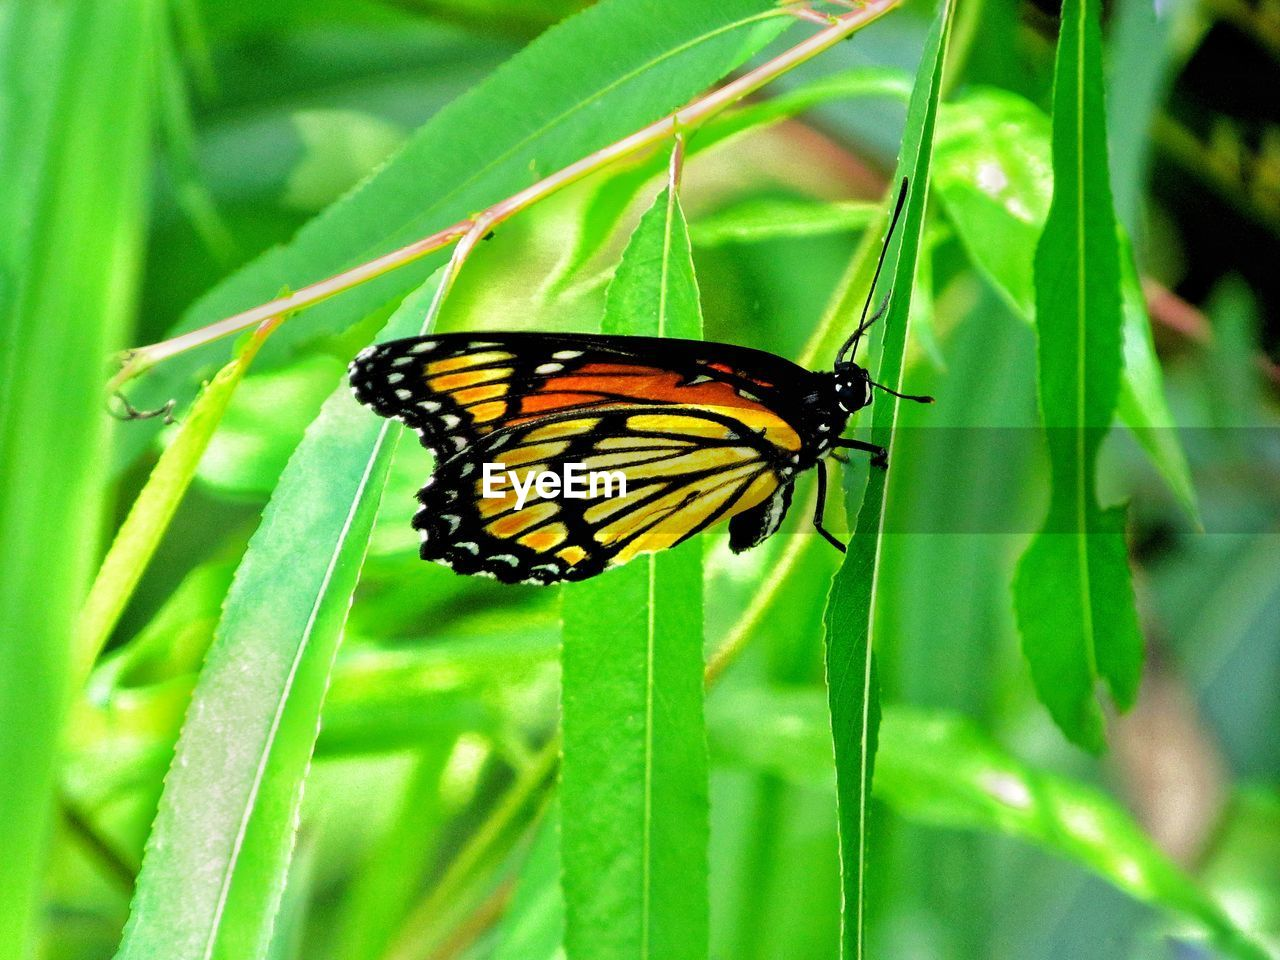 animal wildlife, animals in the wild, animal themes, insect, animal, invertebrate, one animal, green color, plant, close-up, beauty in nature, animal wing, plant part, growth, leaf, nature, butterfly - insect, day, focus on foreground, no people, butterfly, pollination, blade of grass